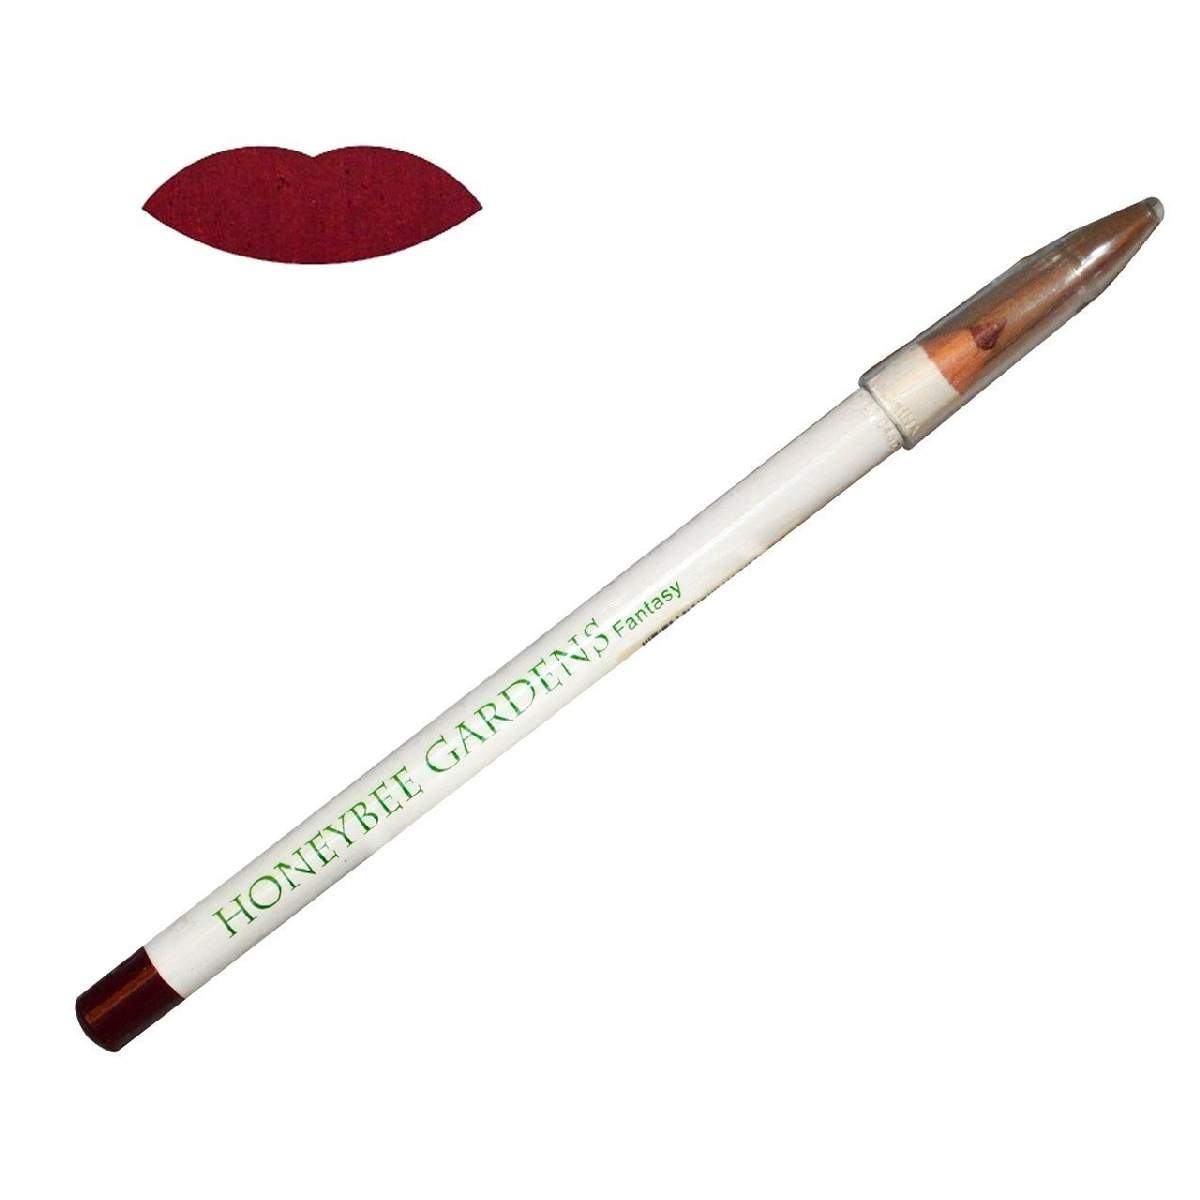 Honeybee Gardens Lip Liner - Fantasy - 0.04 Oz